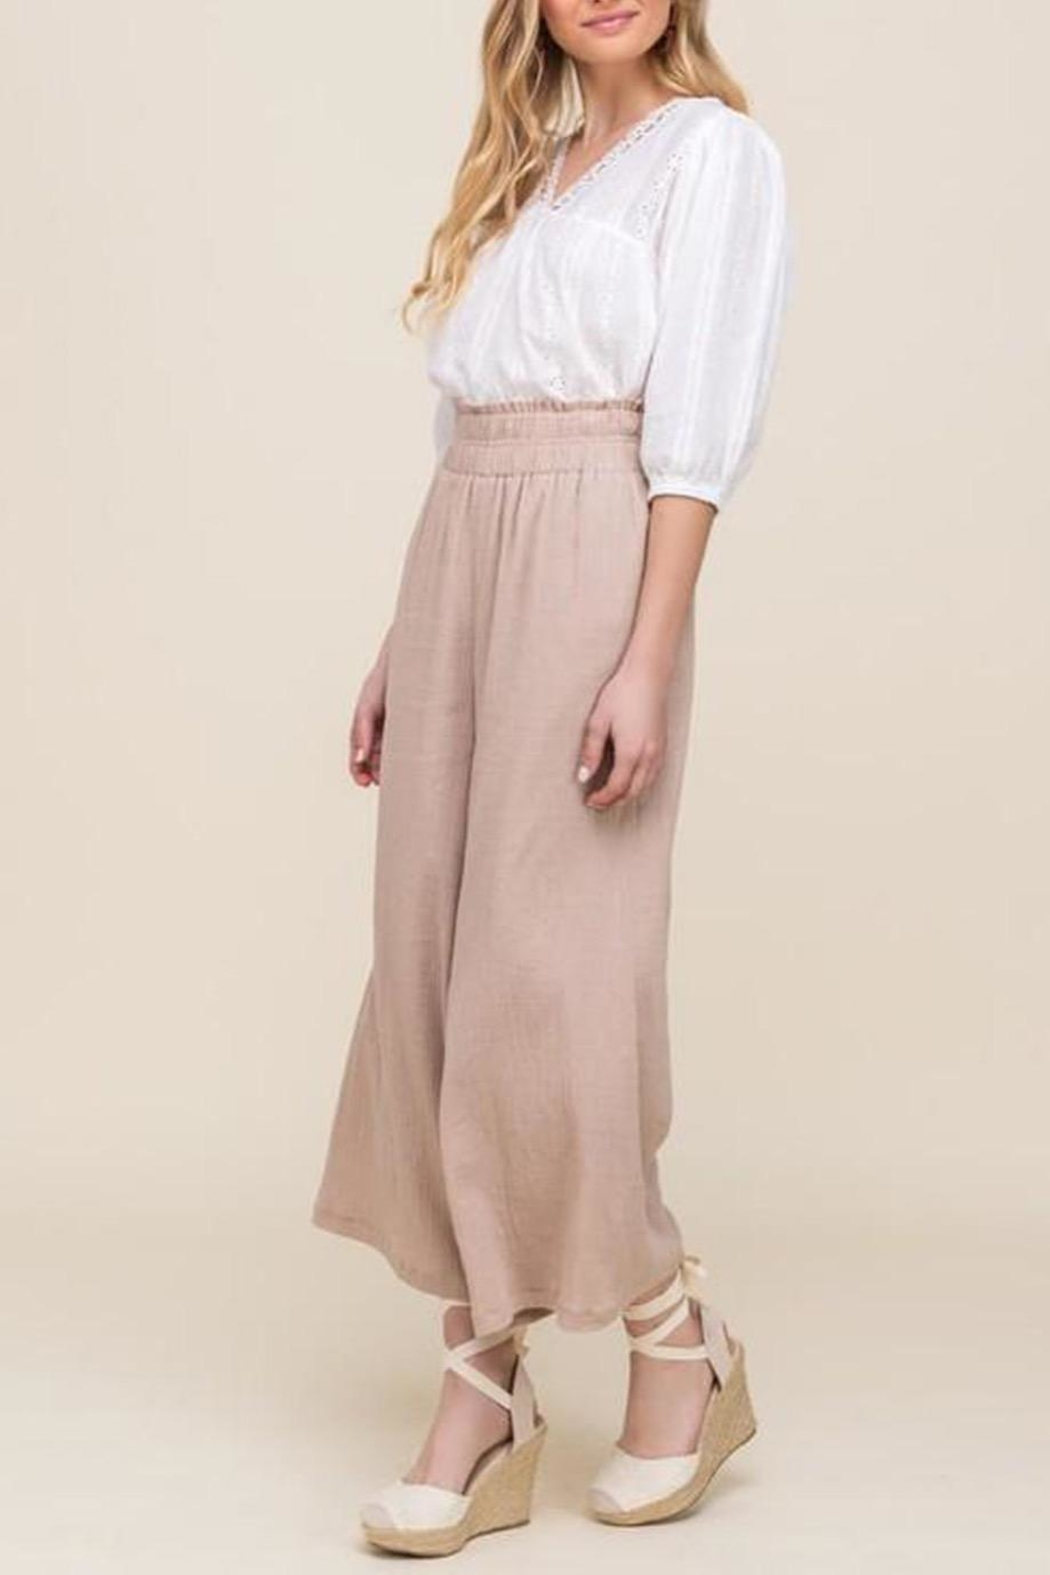 All In Favor Eyelet Balloon-Sleeve Top - Back Cropped Image